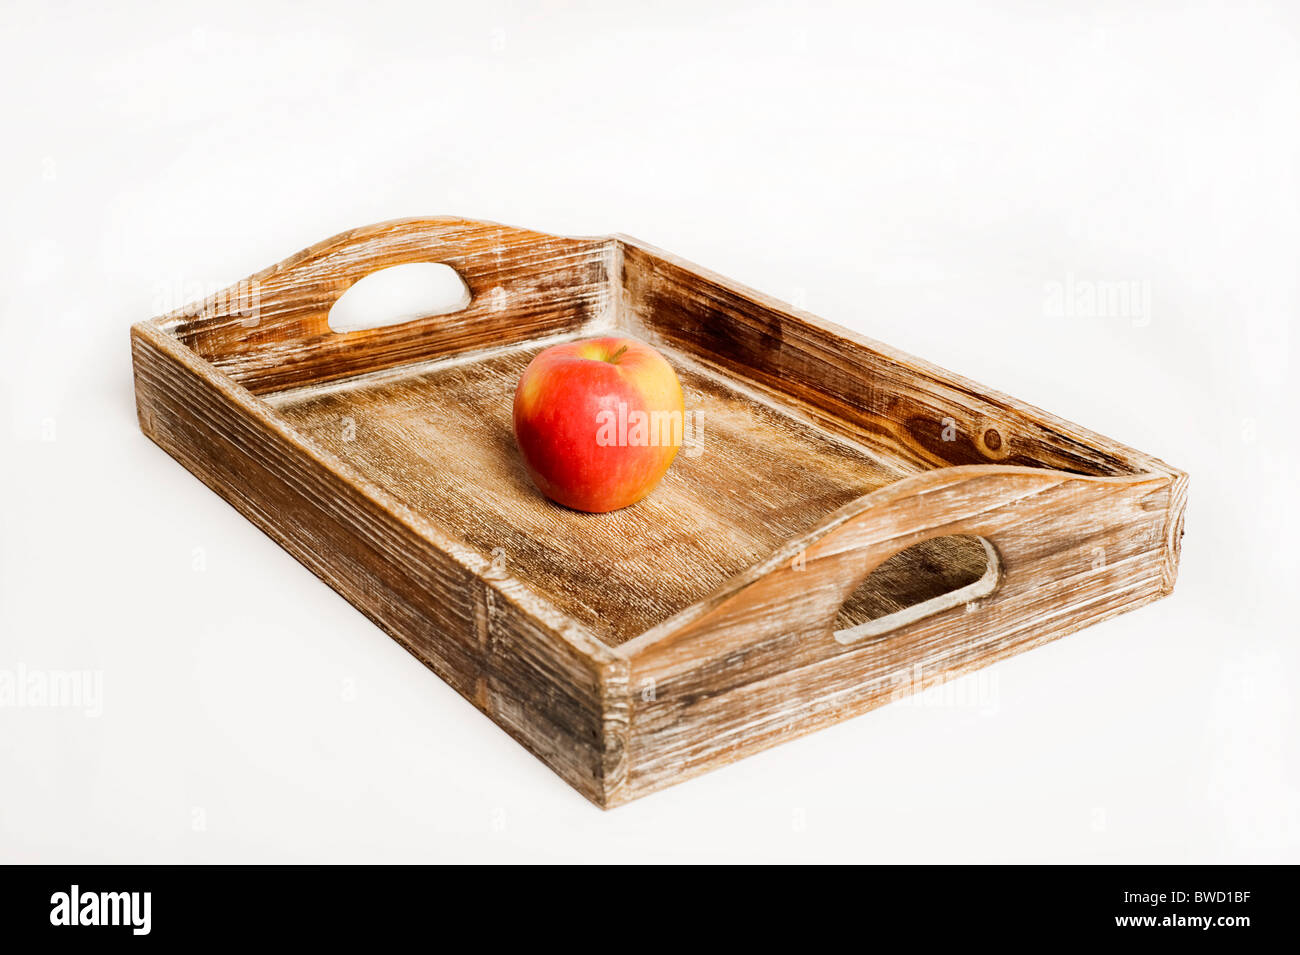 red apple on a wooden serving tray - Stock Image